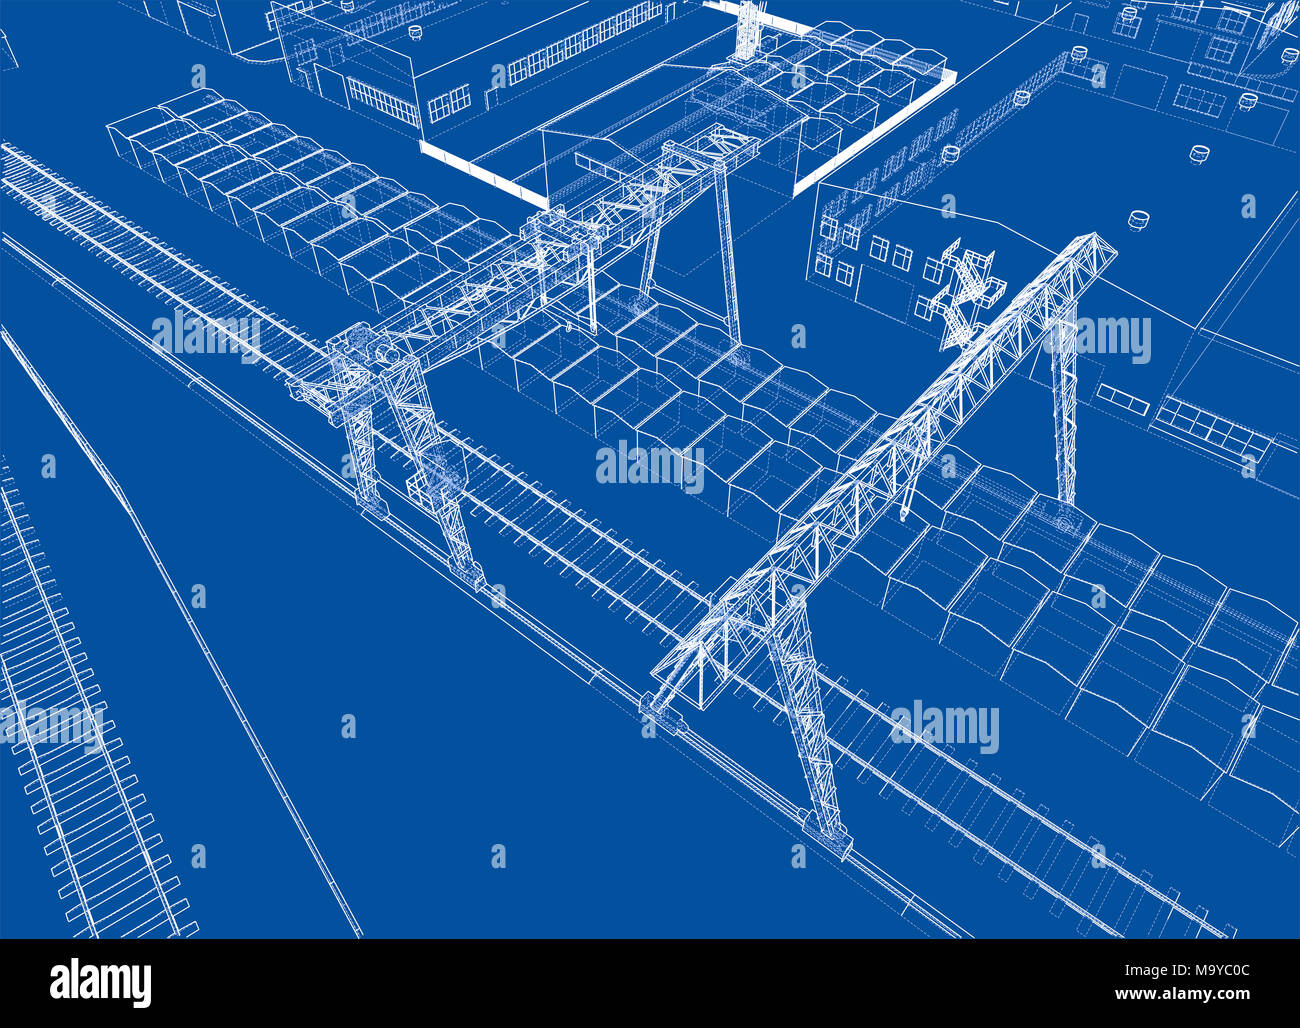 hight resolution of industrial buildings outline wire frame style 3d illustration